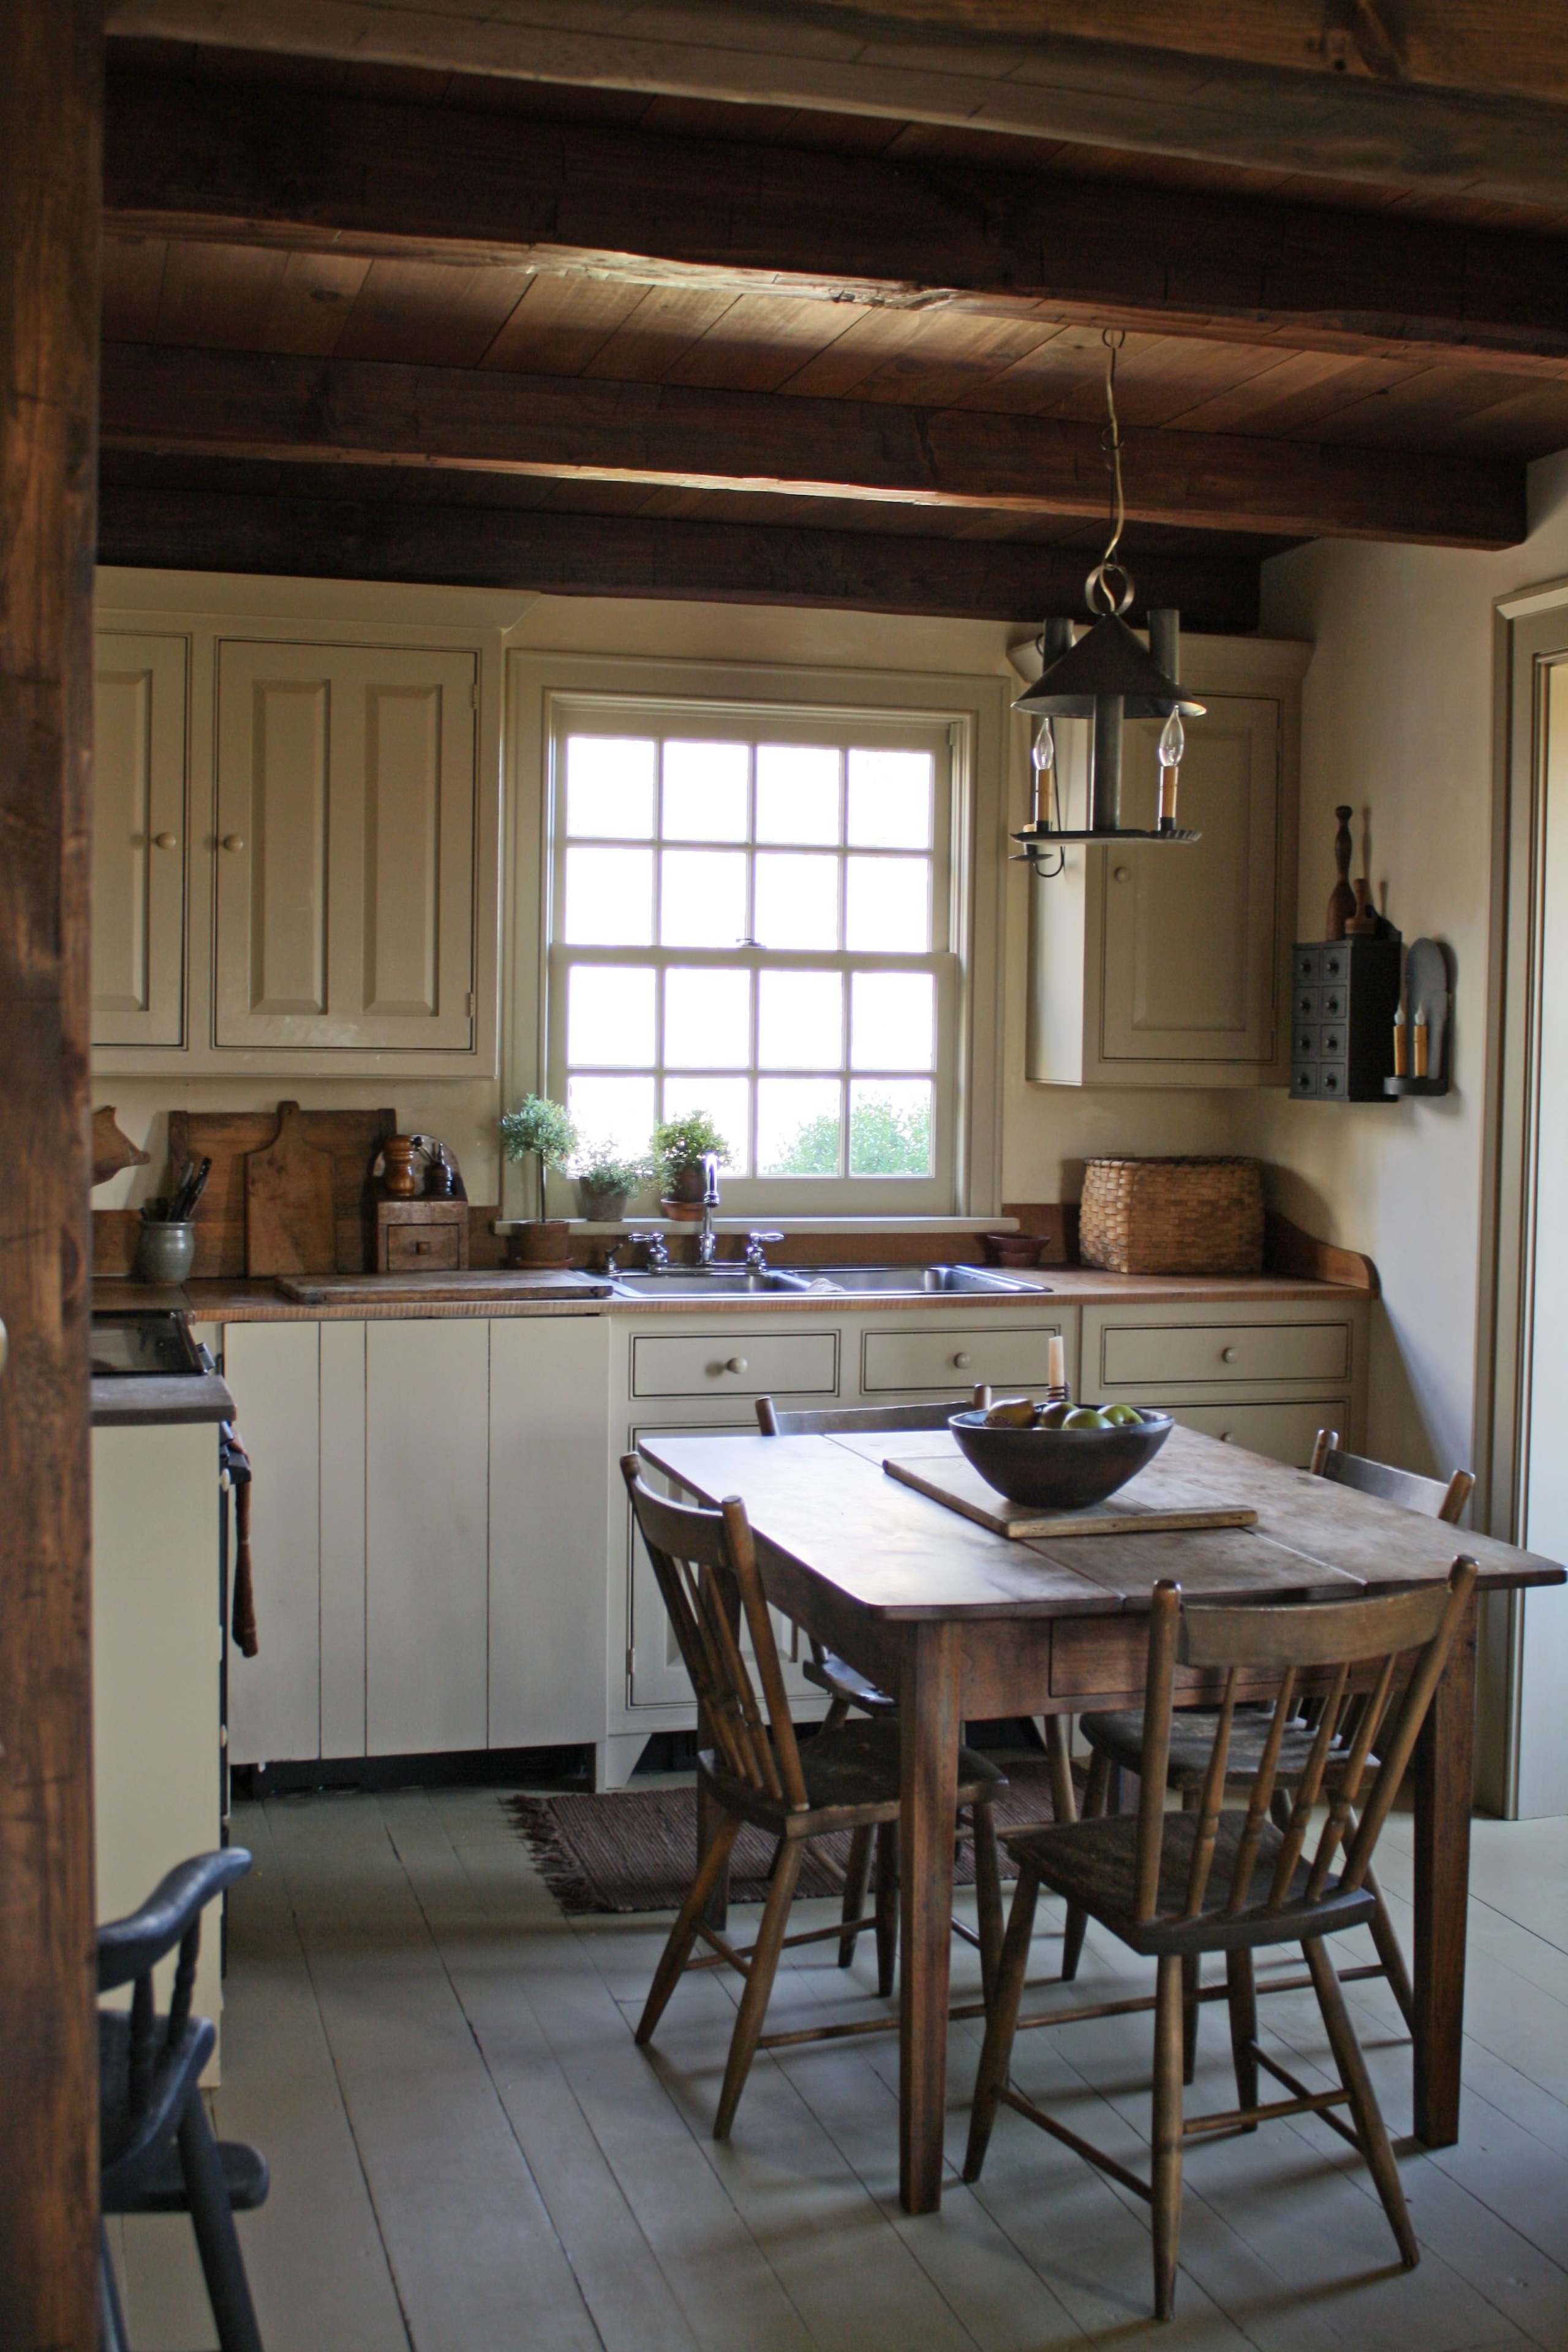 Picture of: Small Country Kitchen Tables Ideas On Foter